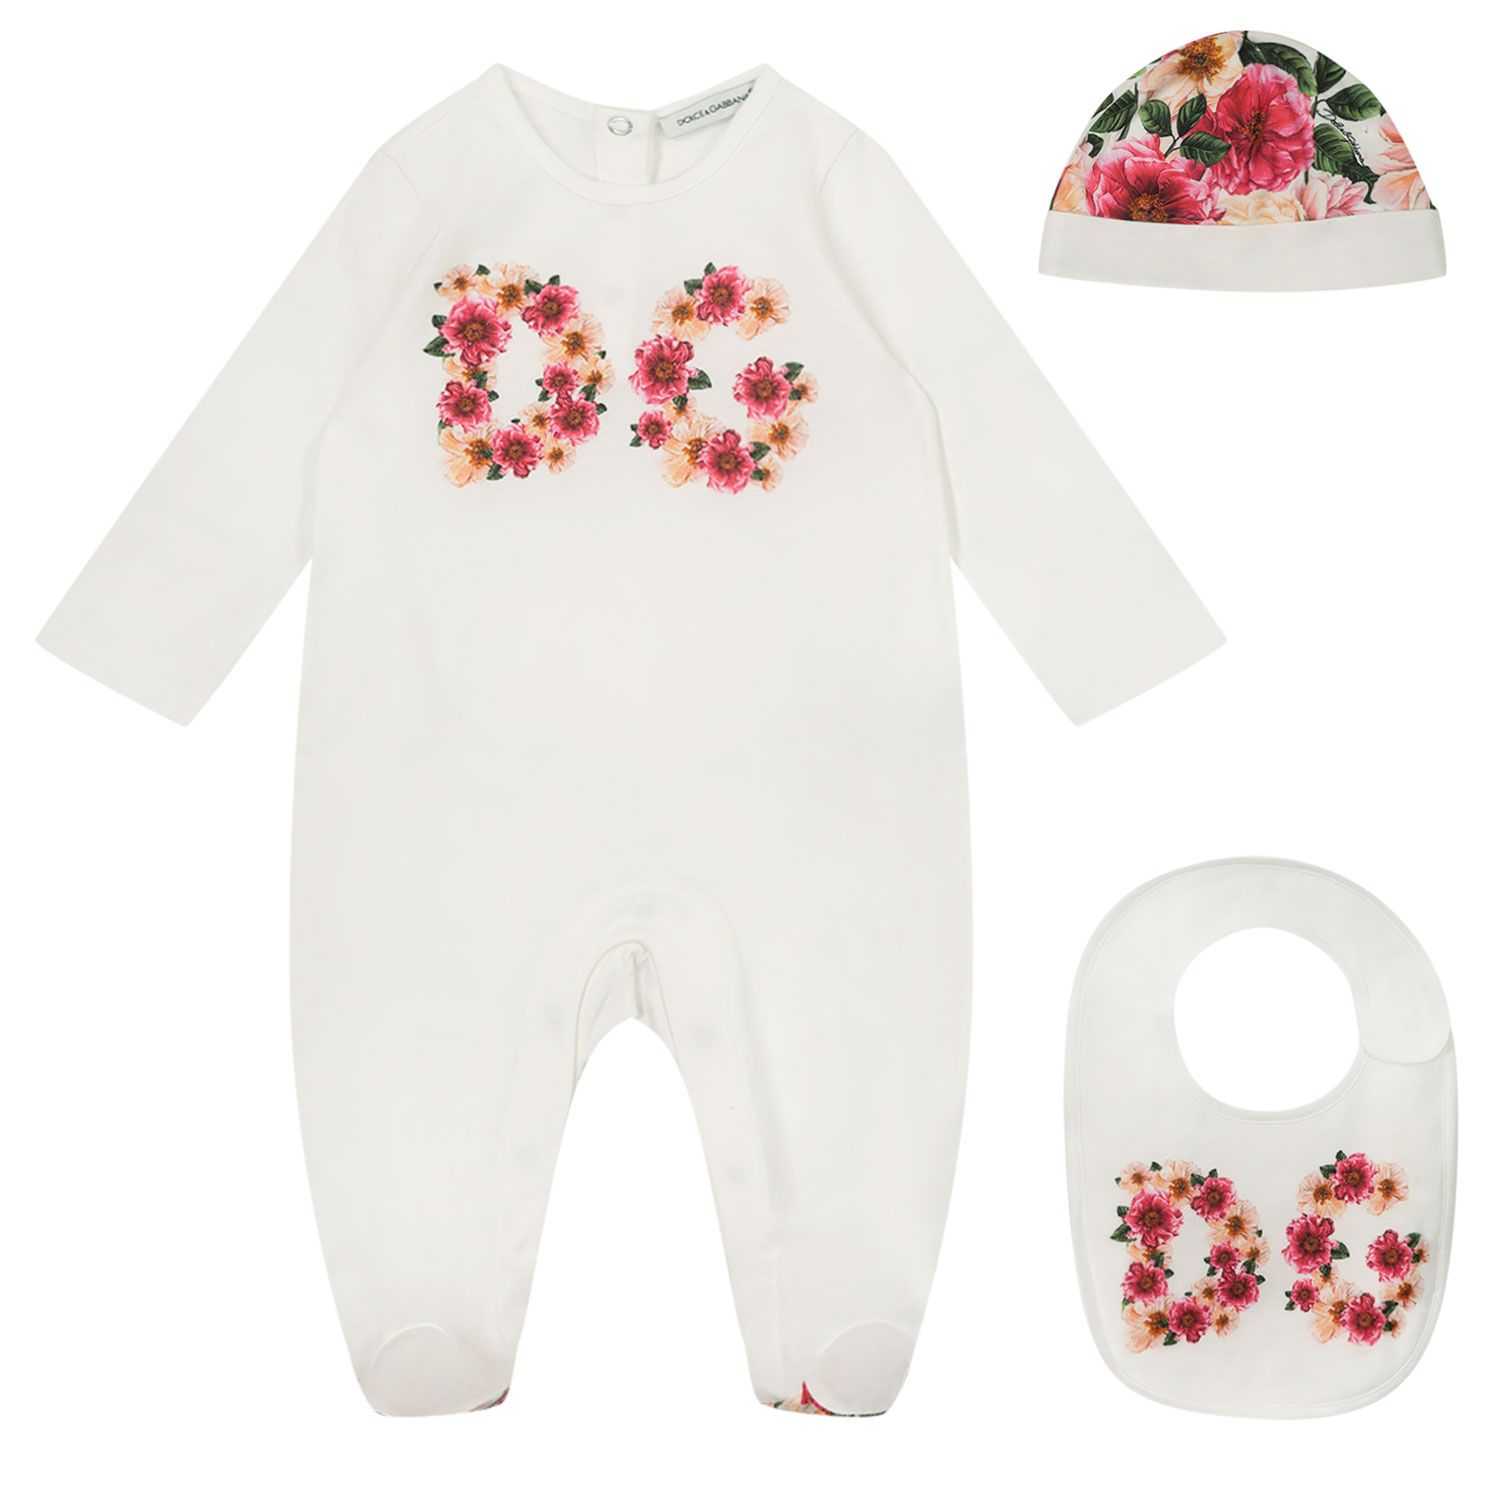 Picture of Dolce & Gabbana L2JG18 baby playsuit pink